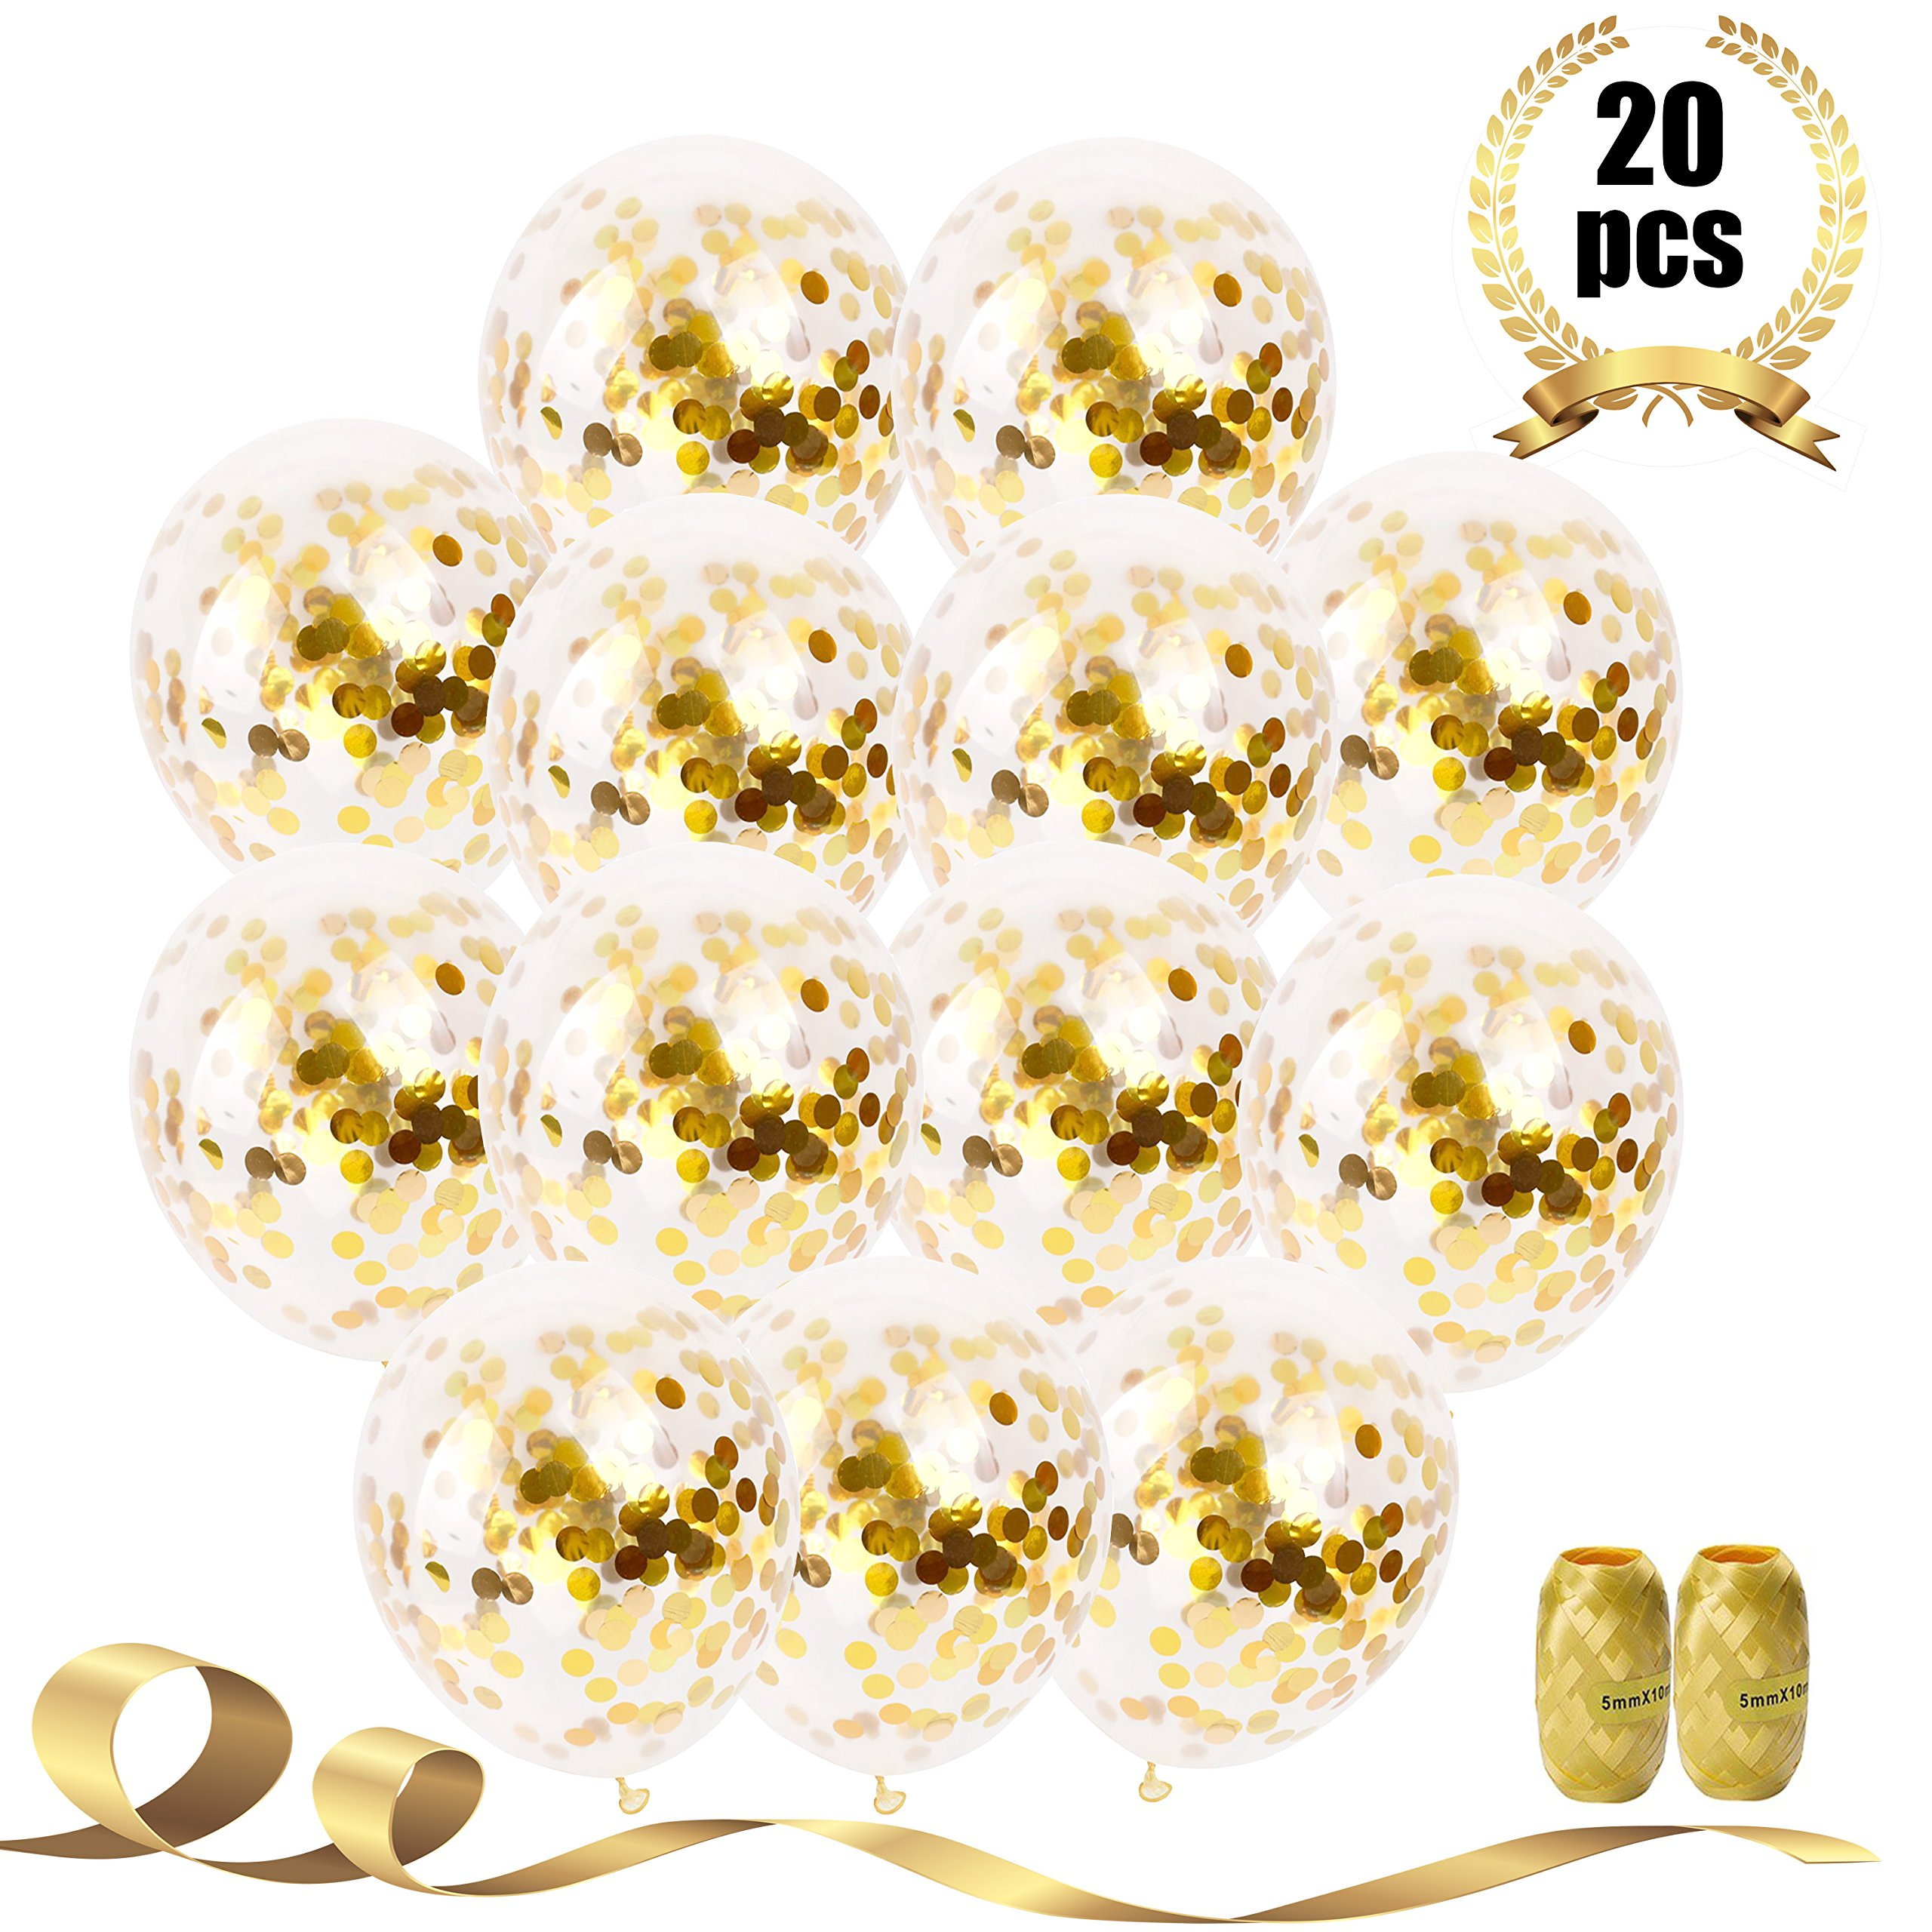 Party Deco 20 Pcs Gold Confetti Balloons, 12'' Large Party Balloons for Party Decorations, Birthday, Baby Shower, Bridal Shower, Graduation, Bachelorette Party with Gold Ribbon